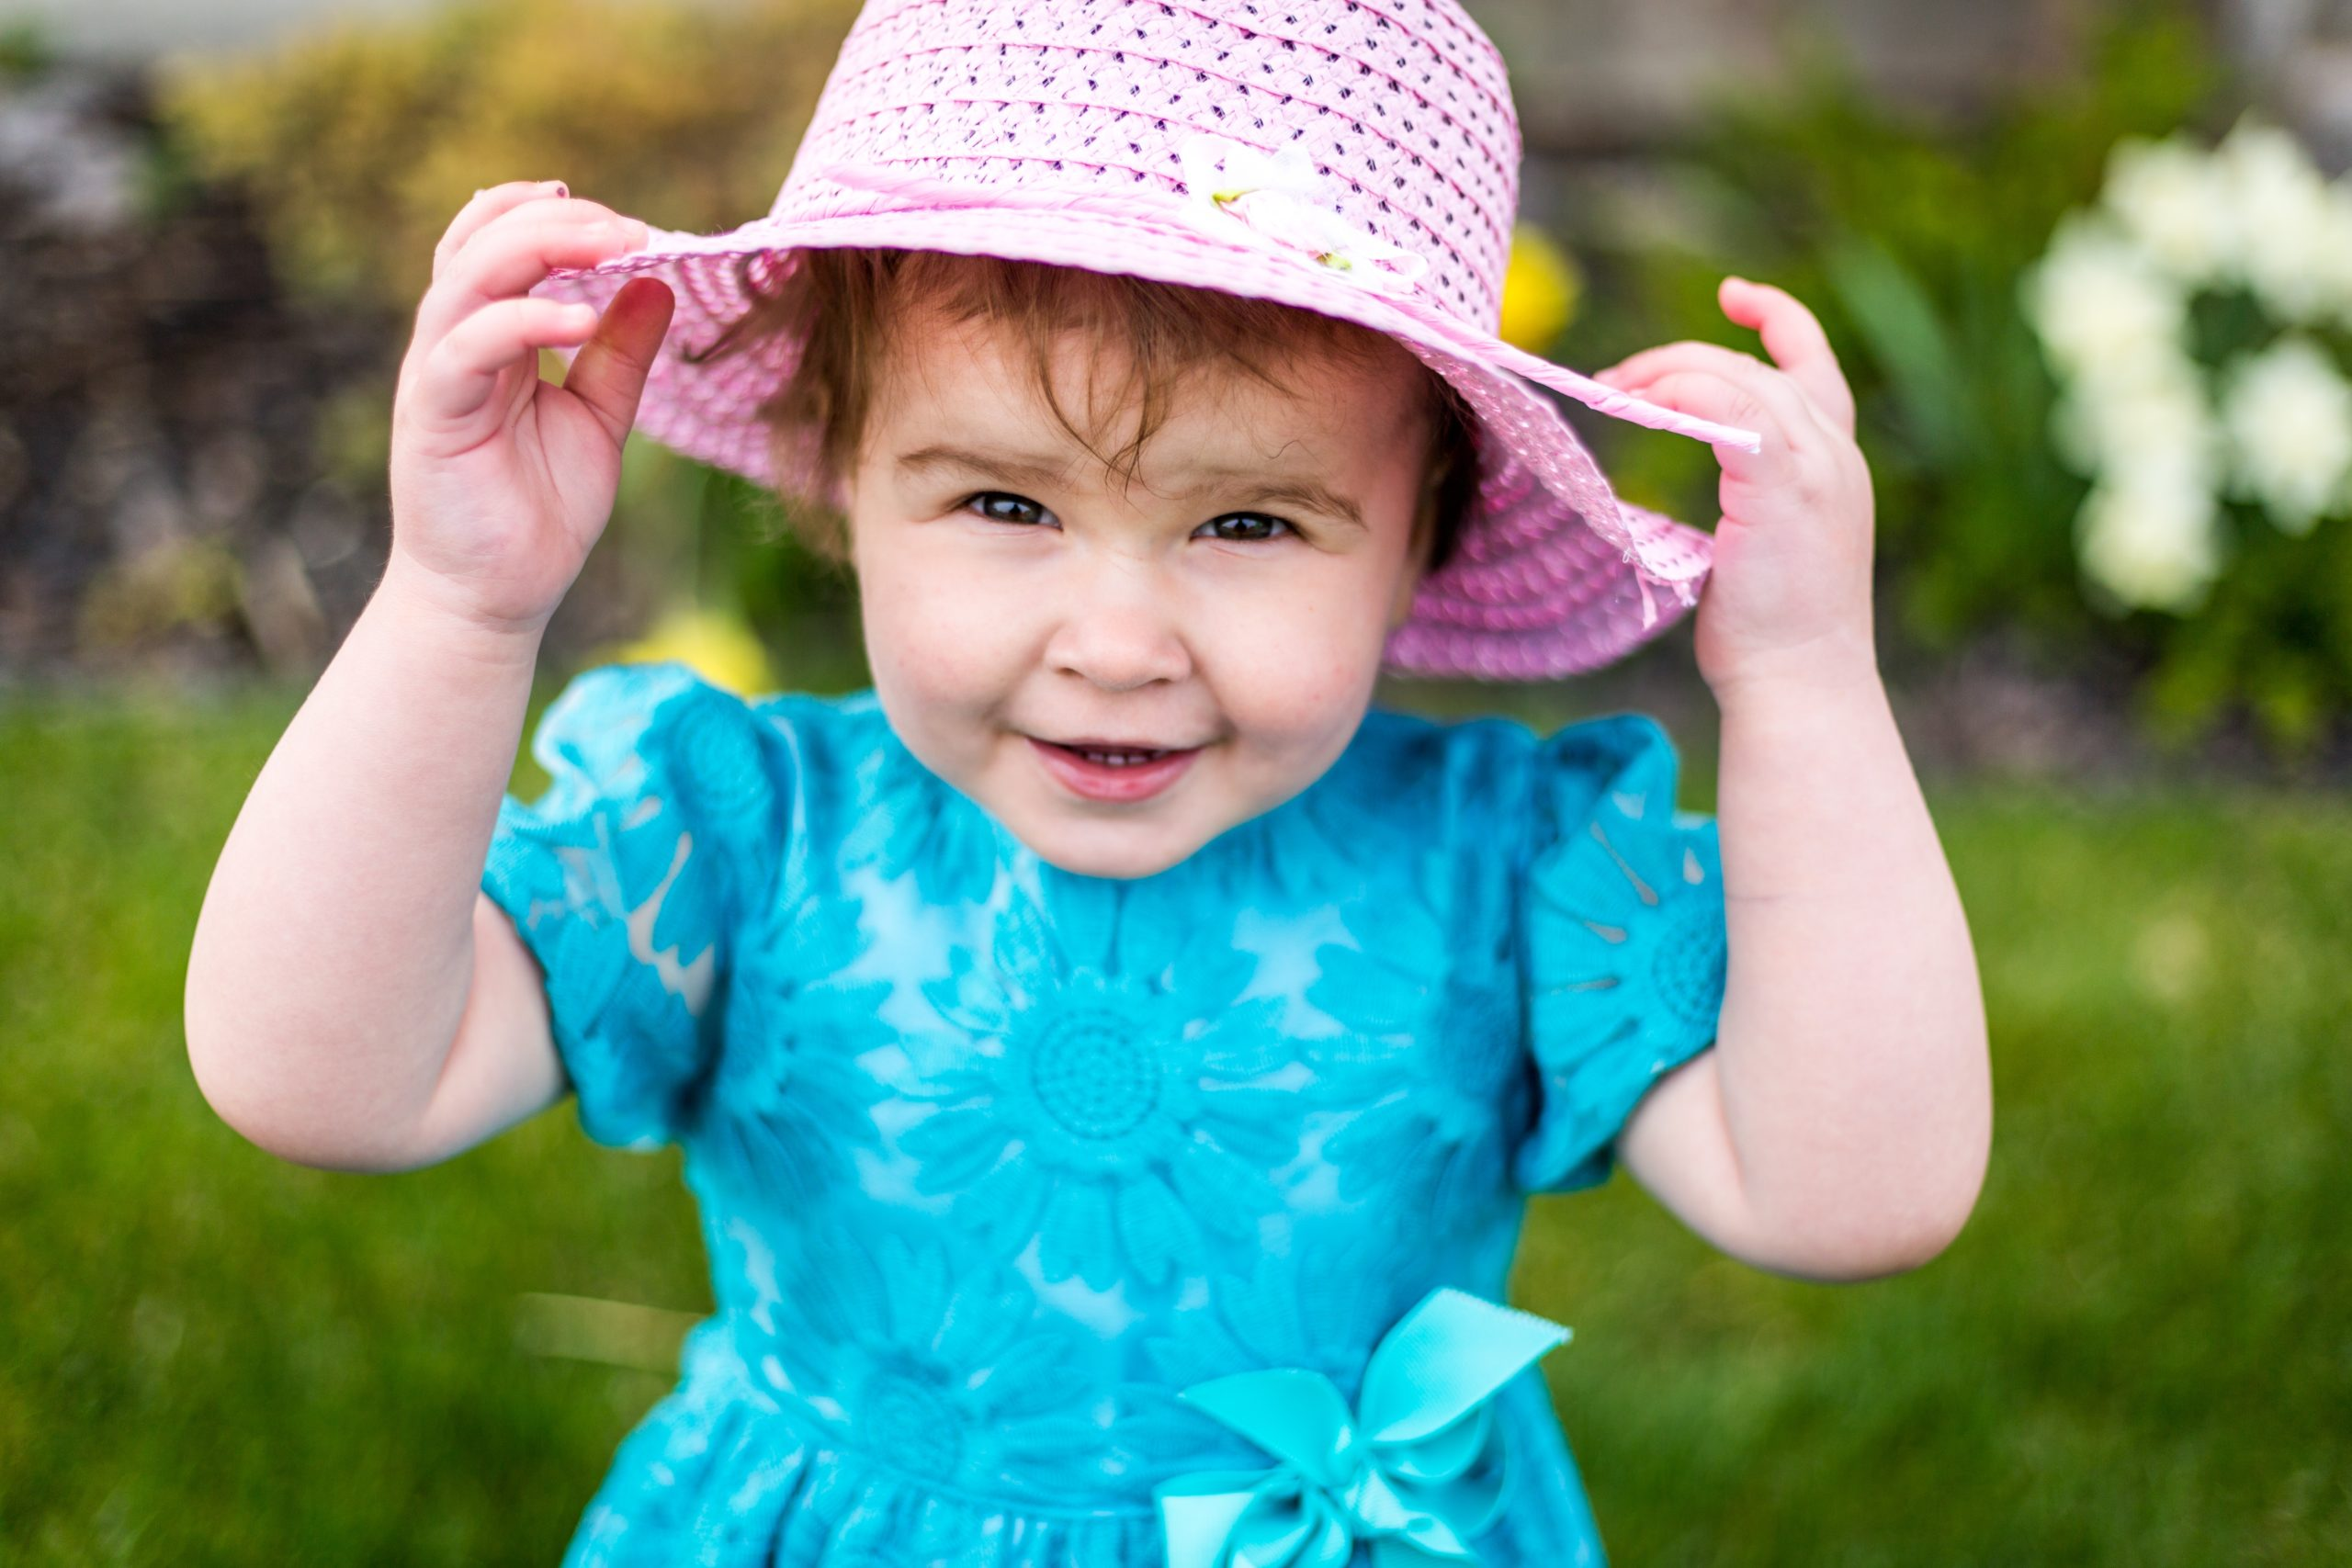 Loving, Sweet, & Safety-Conscious PT Nanny Needed for Little Girl in Malibu!